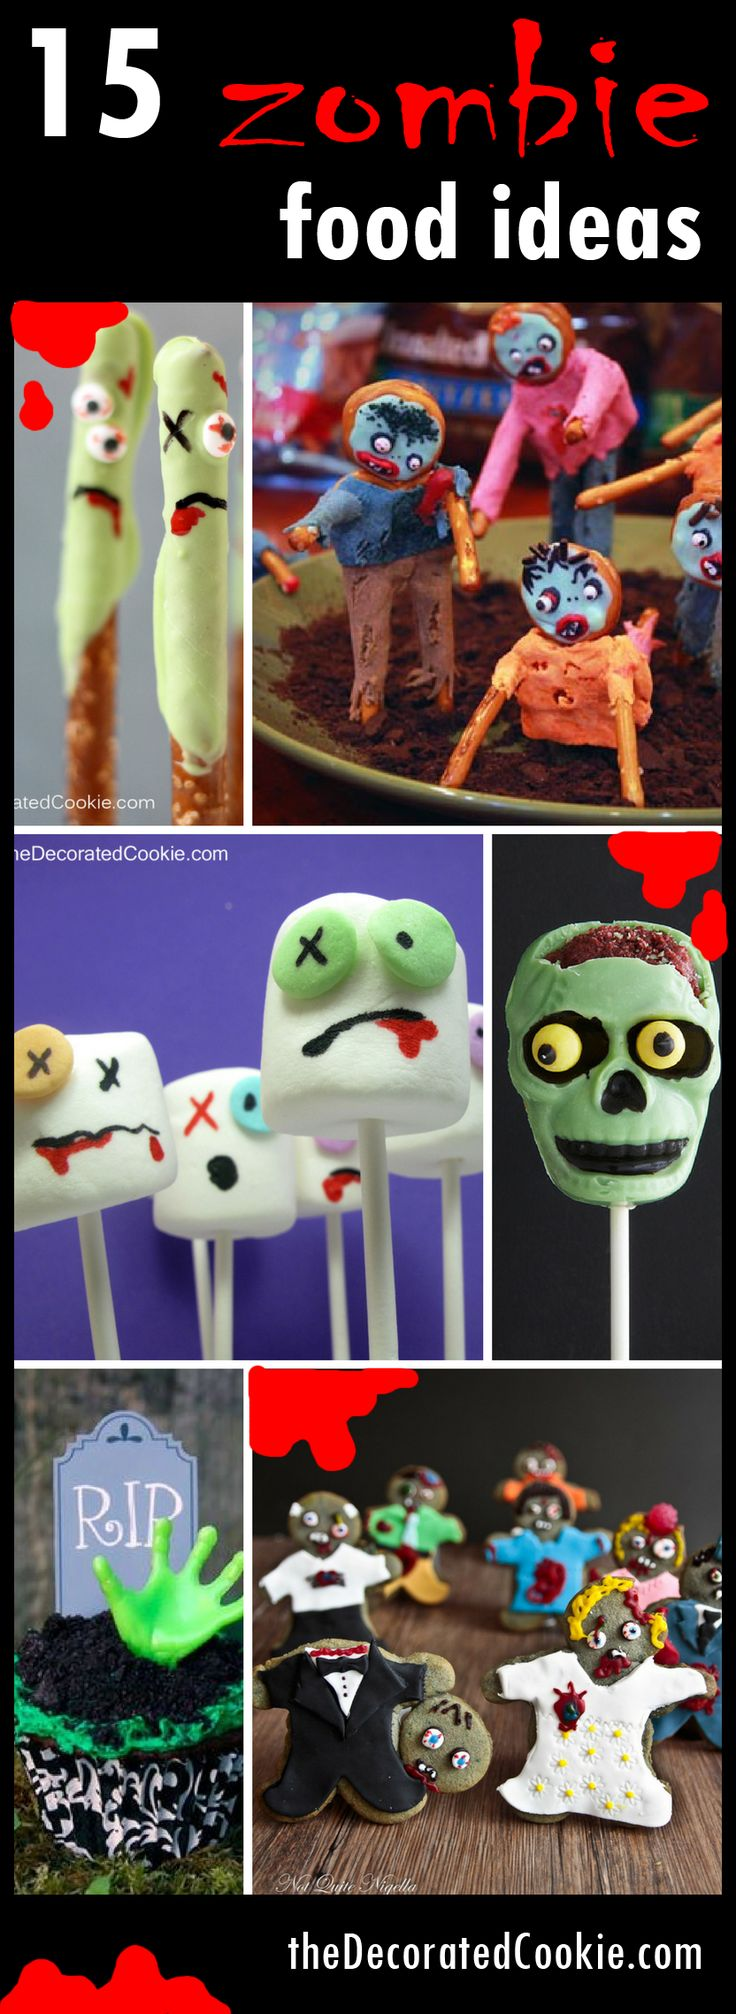 15 zombie food ideas roundup for Halloween or The Walking Dead party